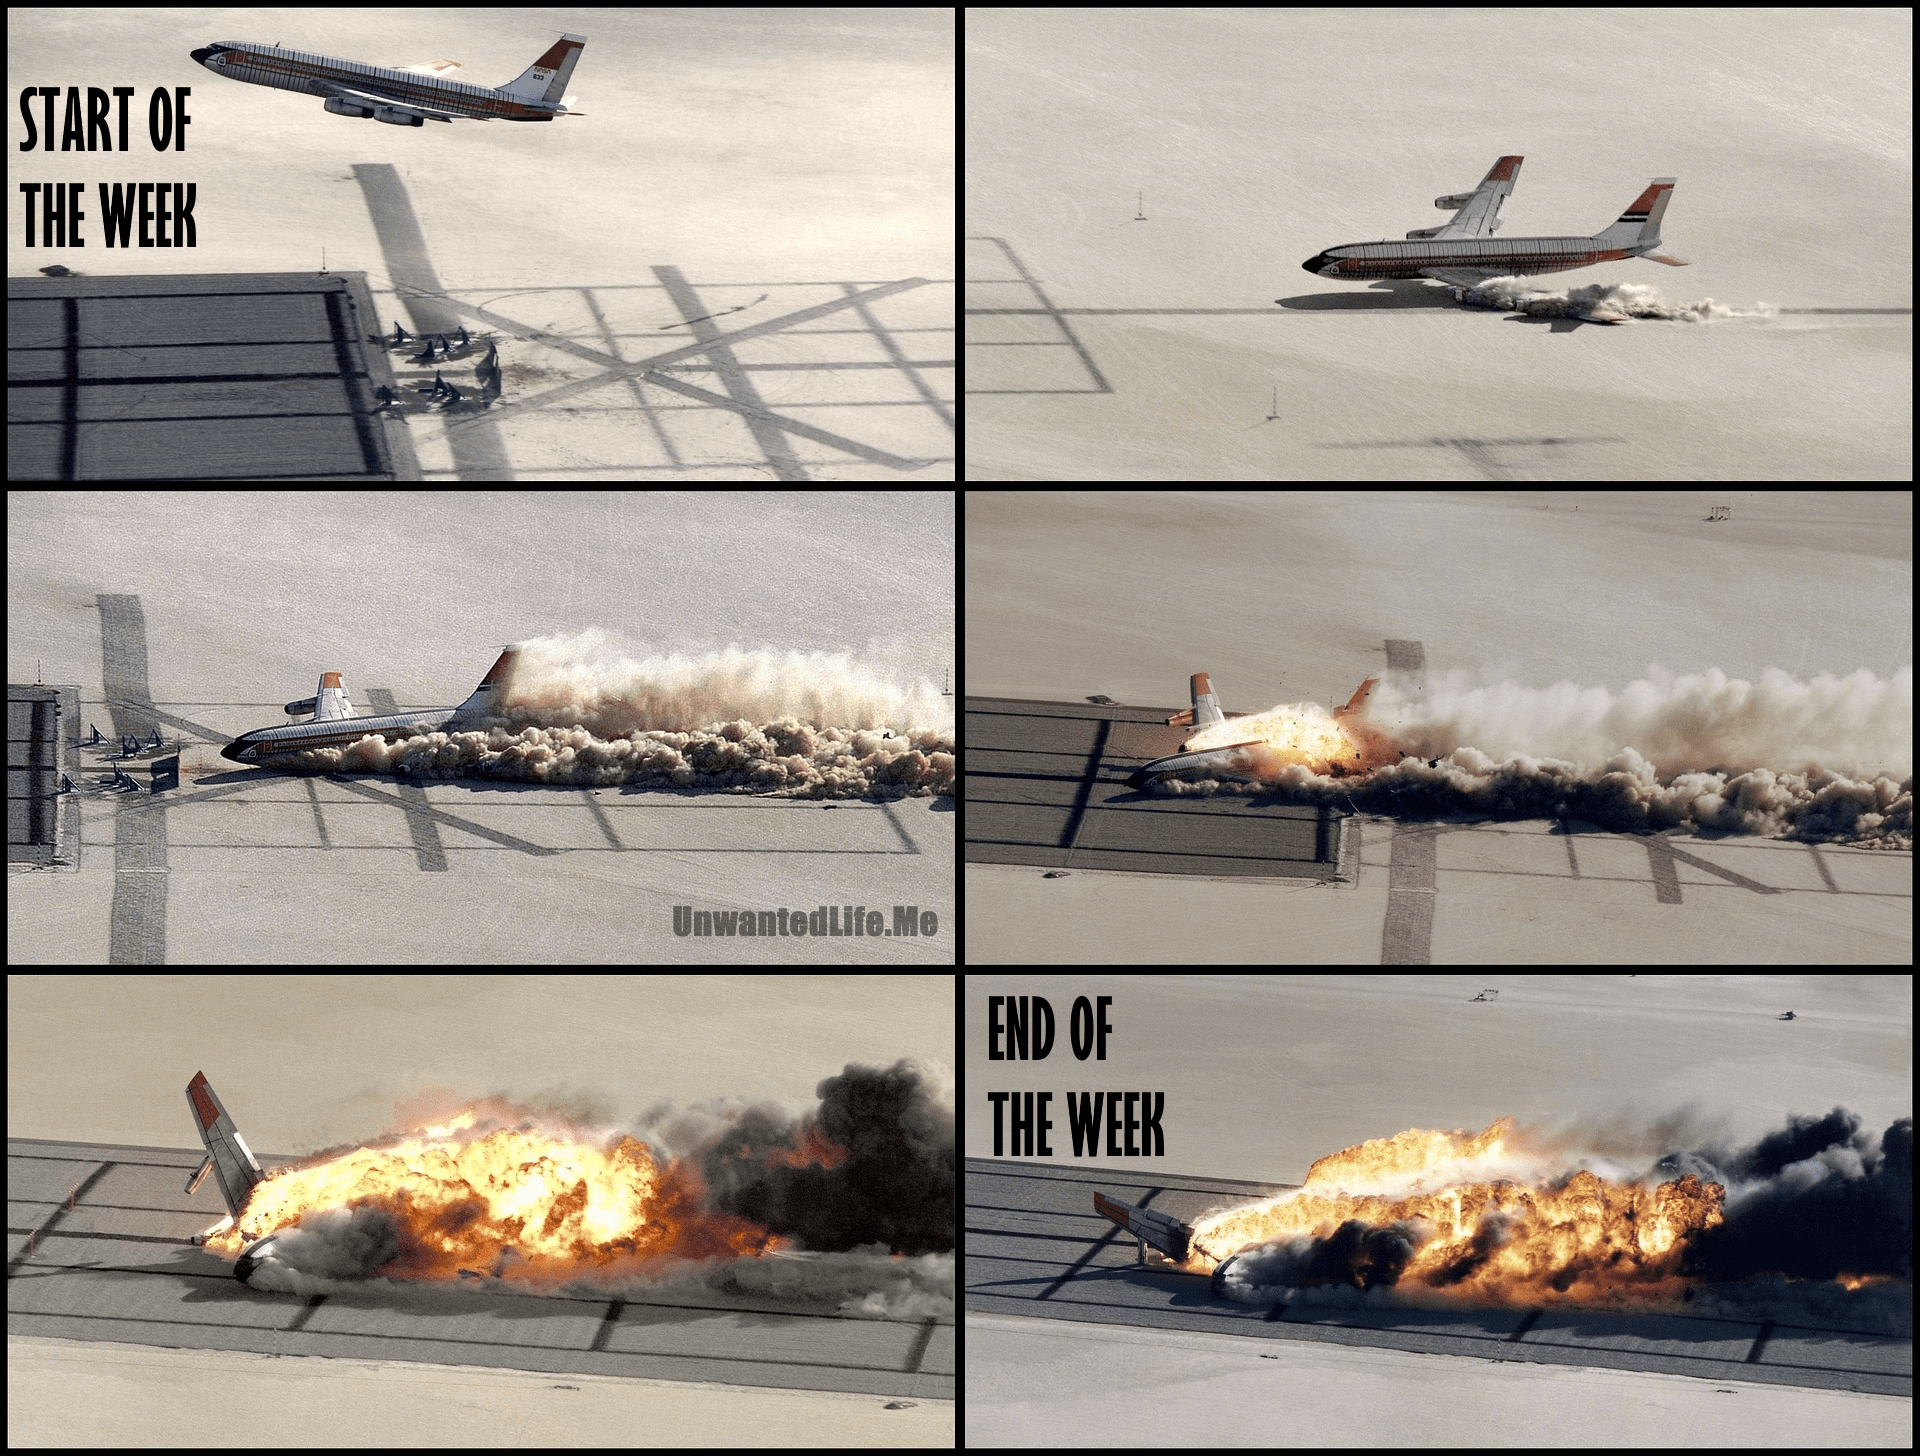 A plane crash separated into several images to show how a week can go from good to bad